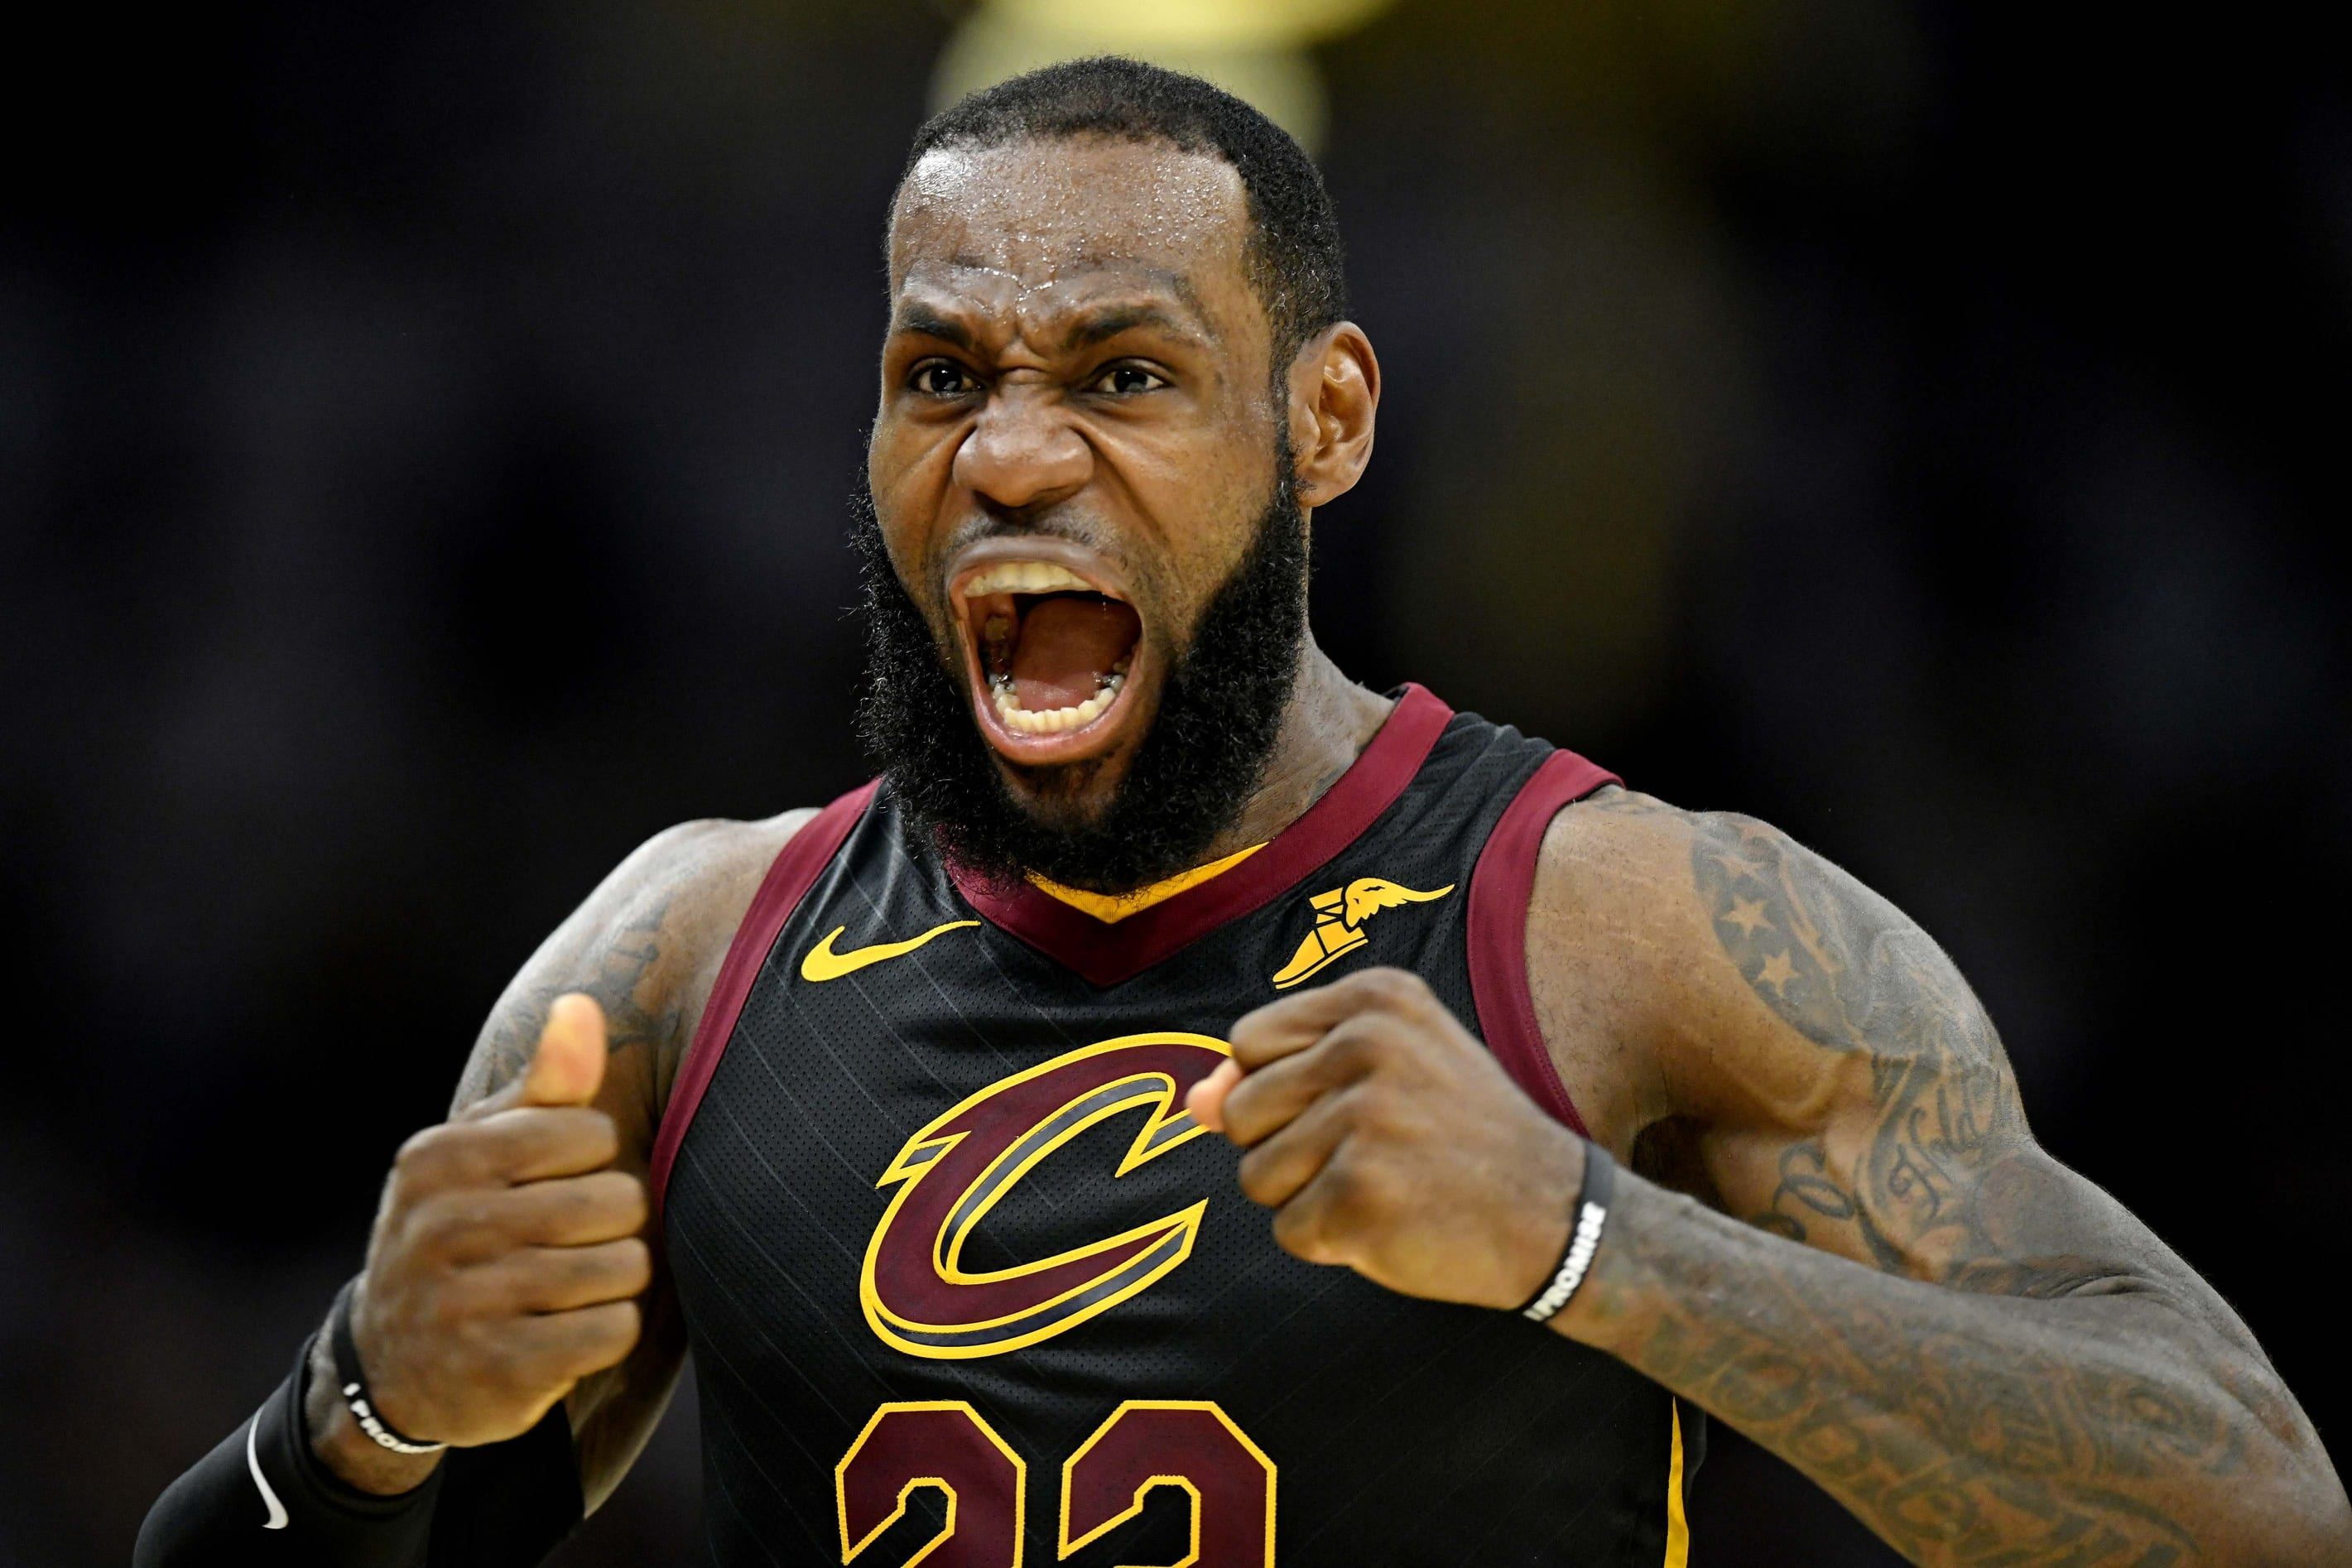 LeBron James puts pen to paper on £115m Los Angeles Lakers deal